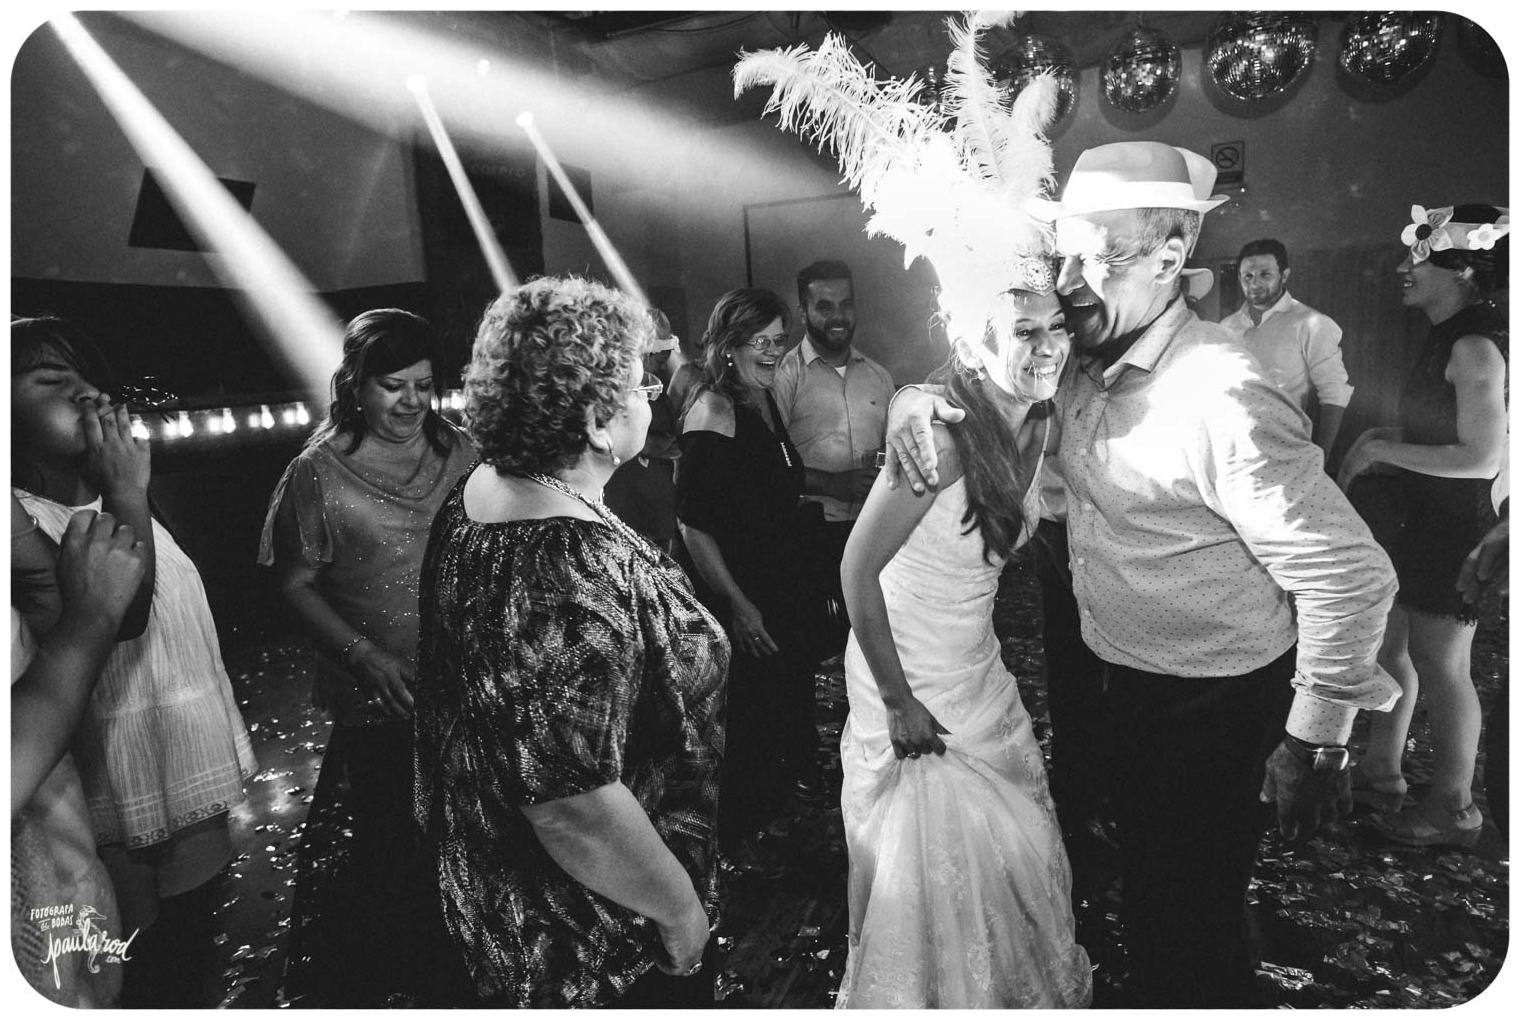 Documental wedding photography and cinematography in Argentina - 6.jpg